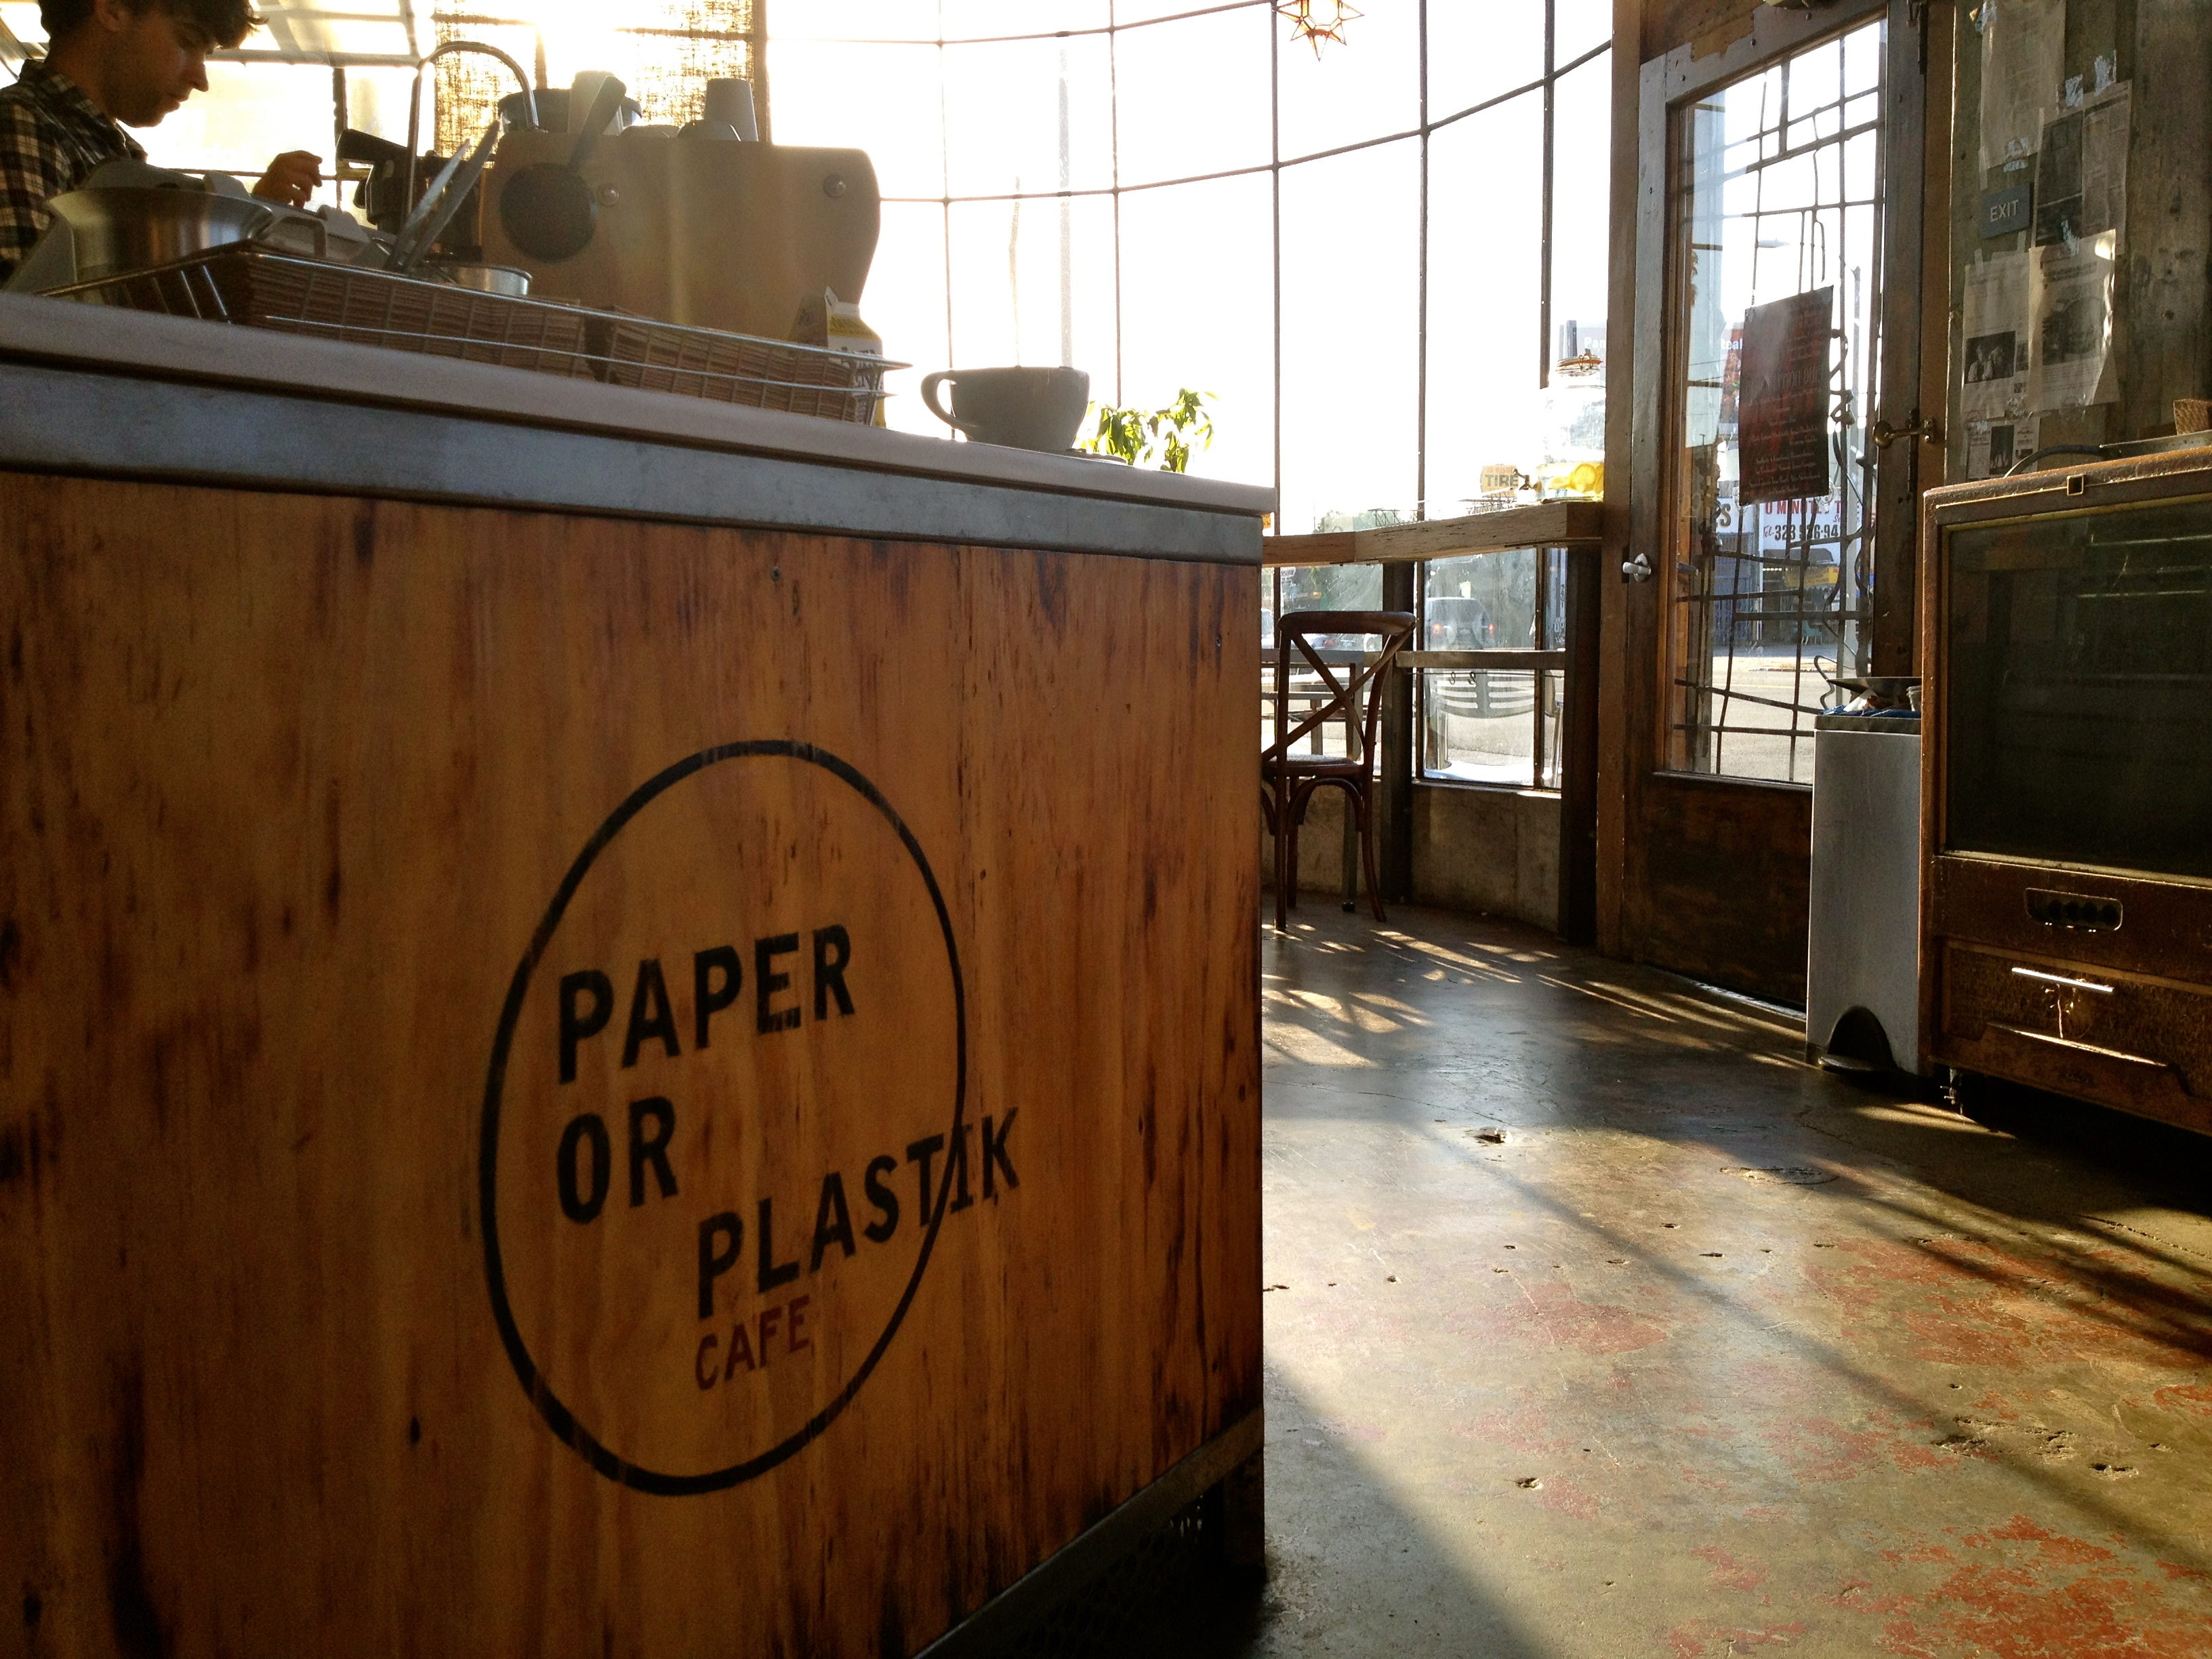 Coffee Shop Near Paper Or Plastik Cafe